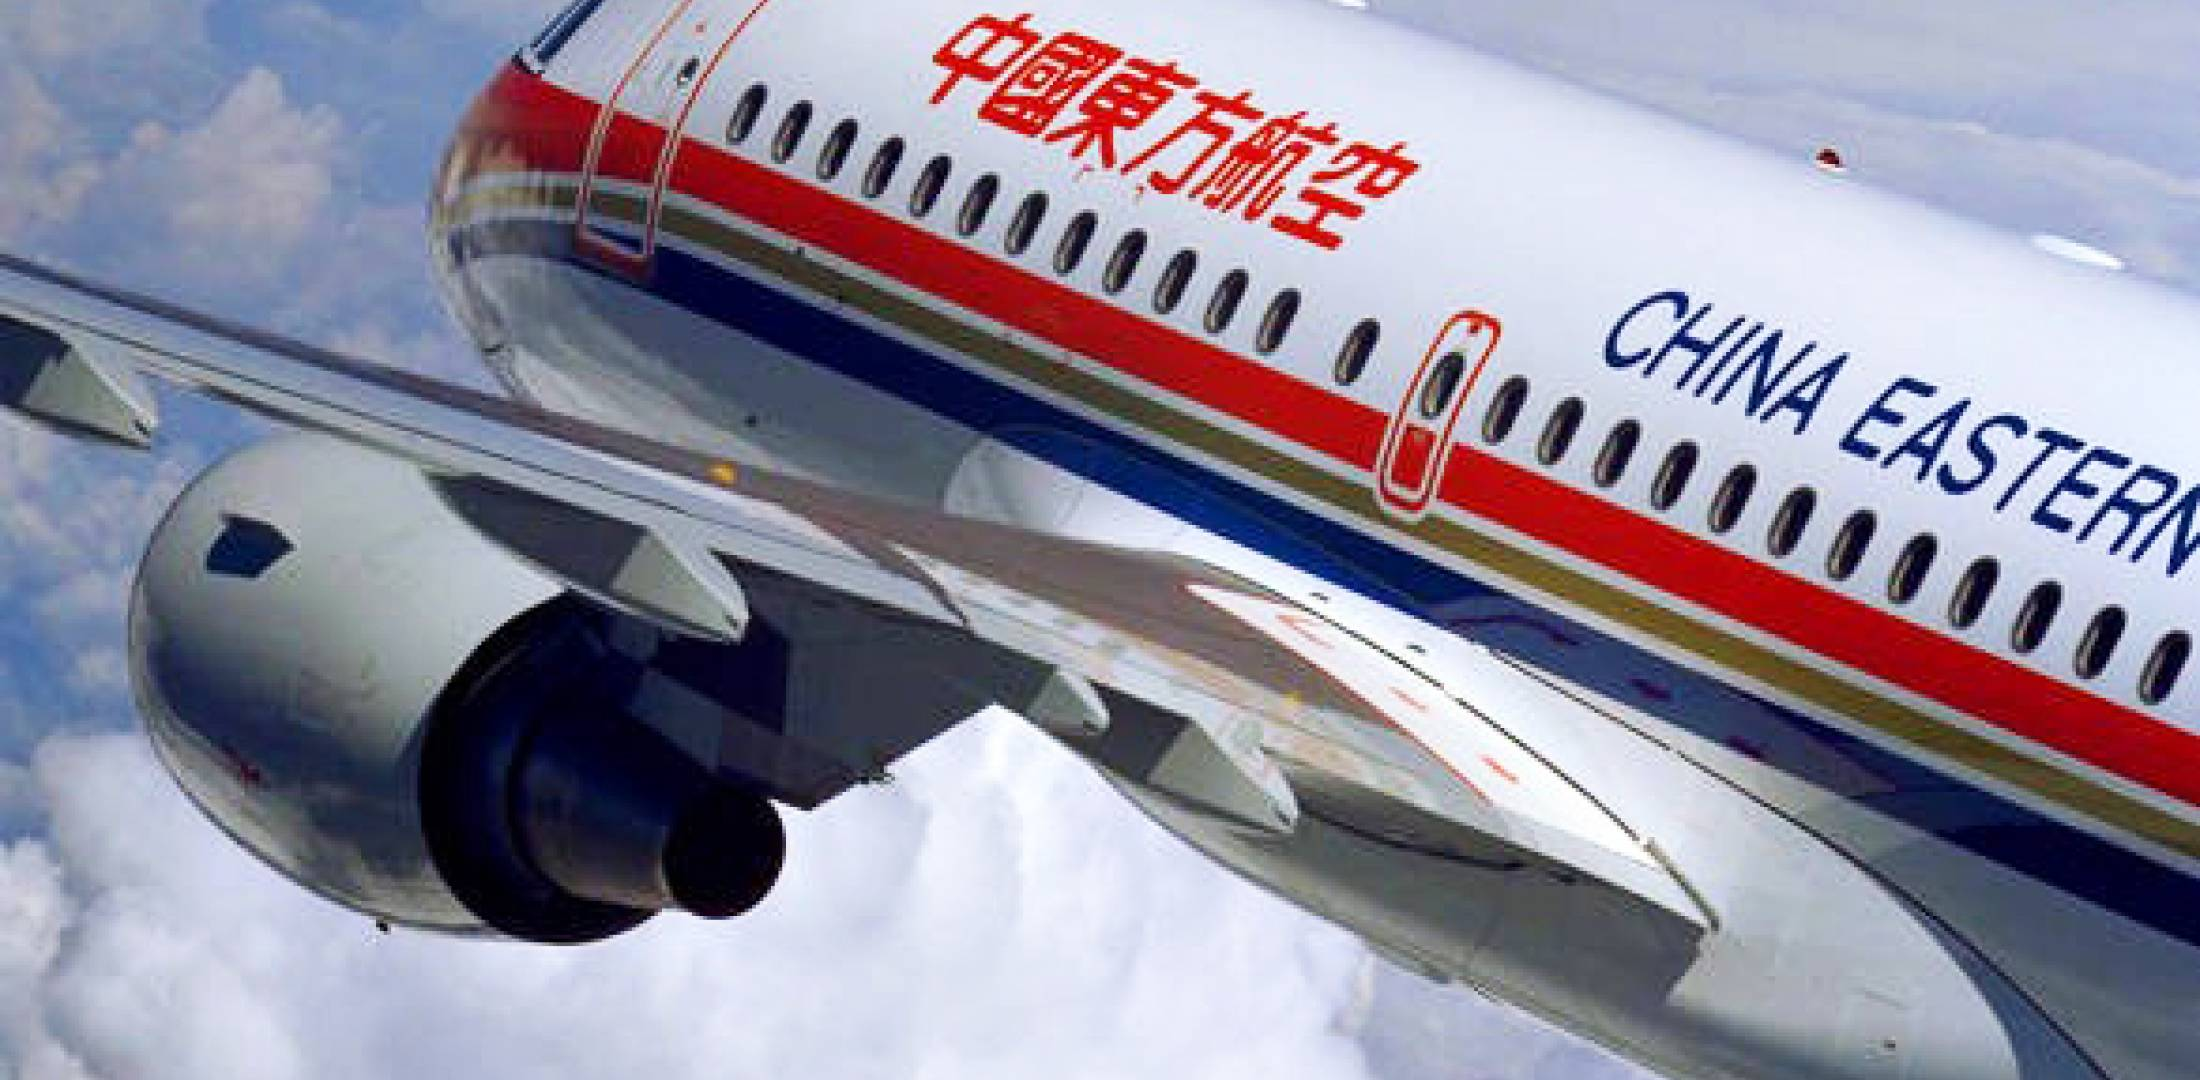 Some of the 102 Airbus airplanes ordered by China Aviation Supplies Holding C...